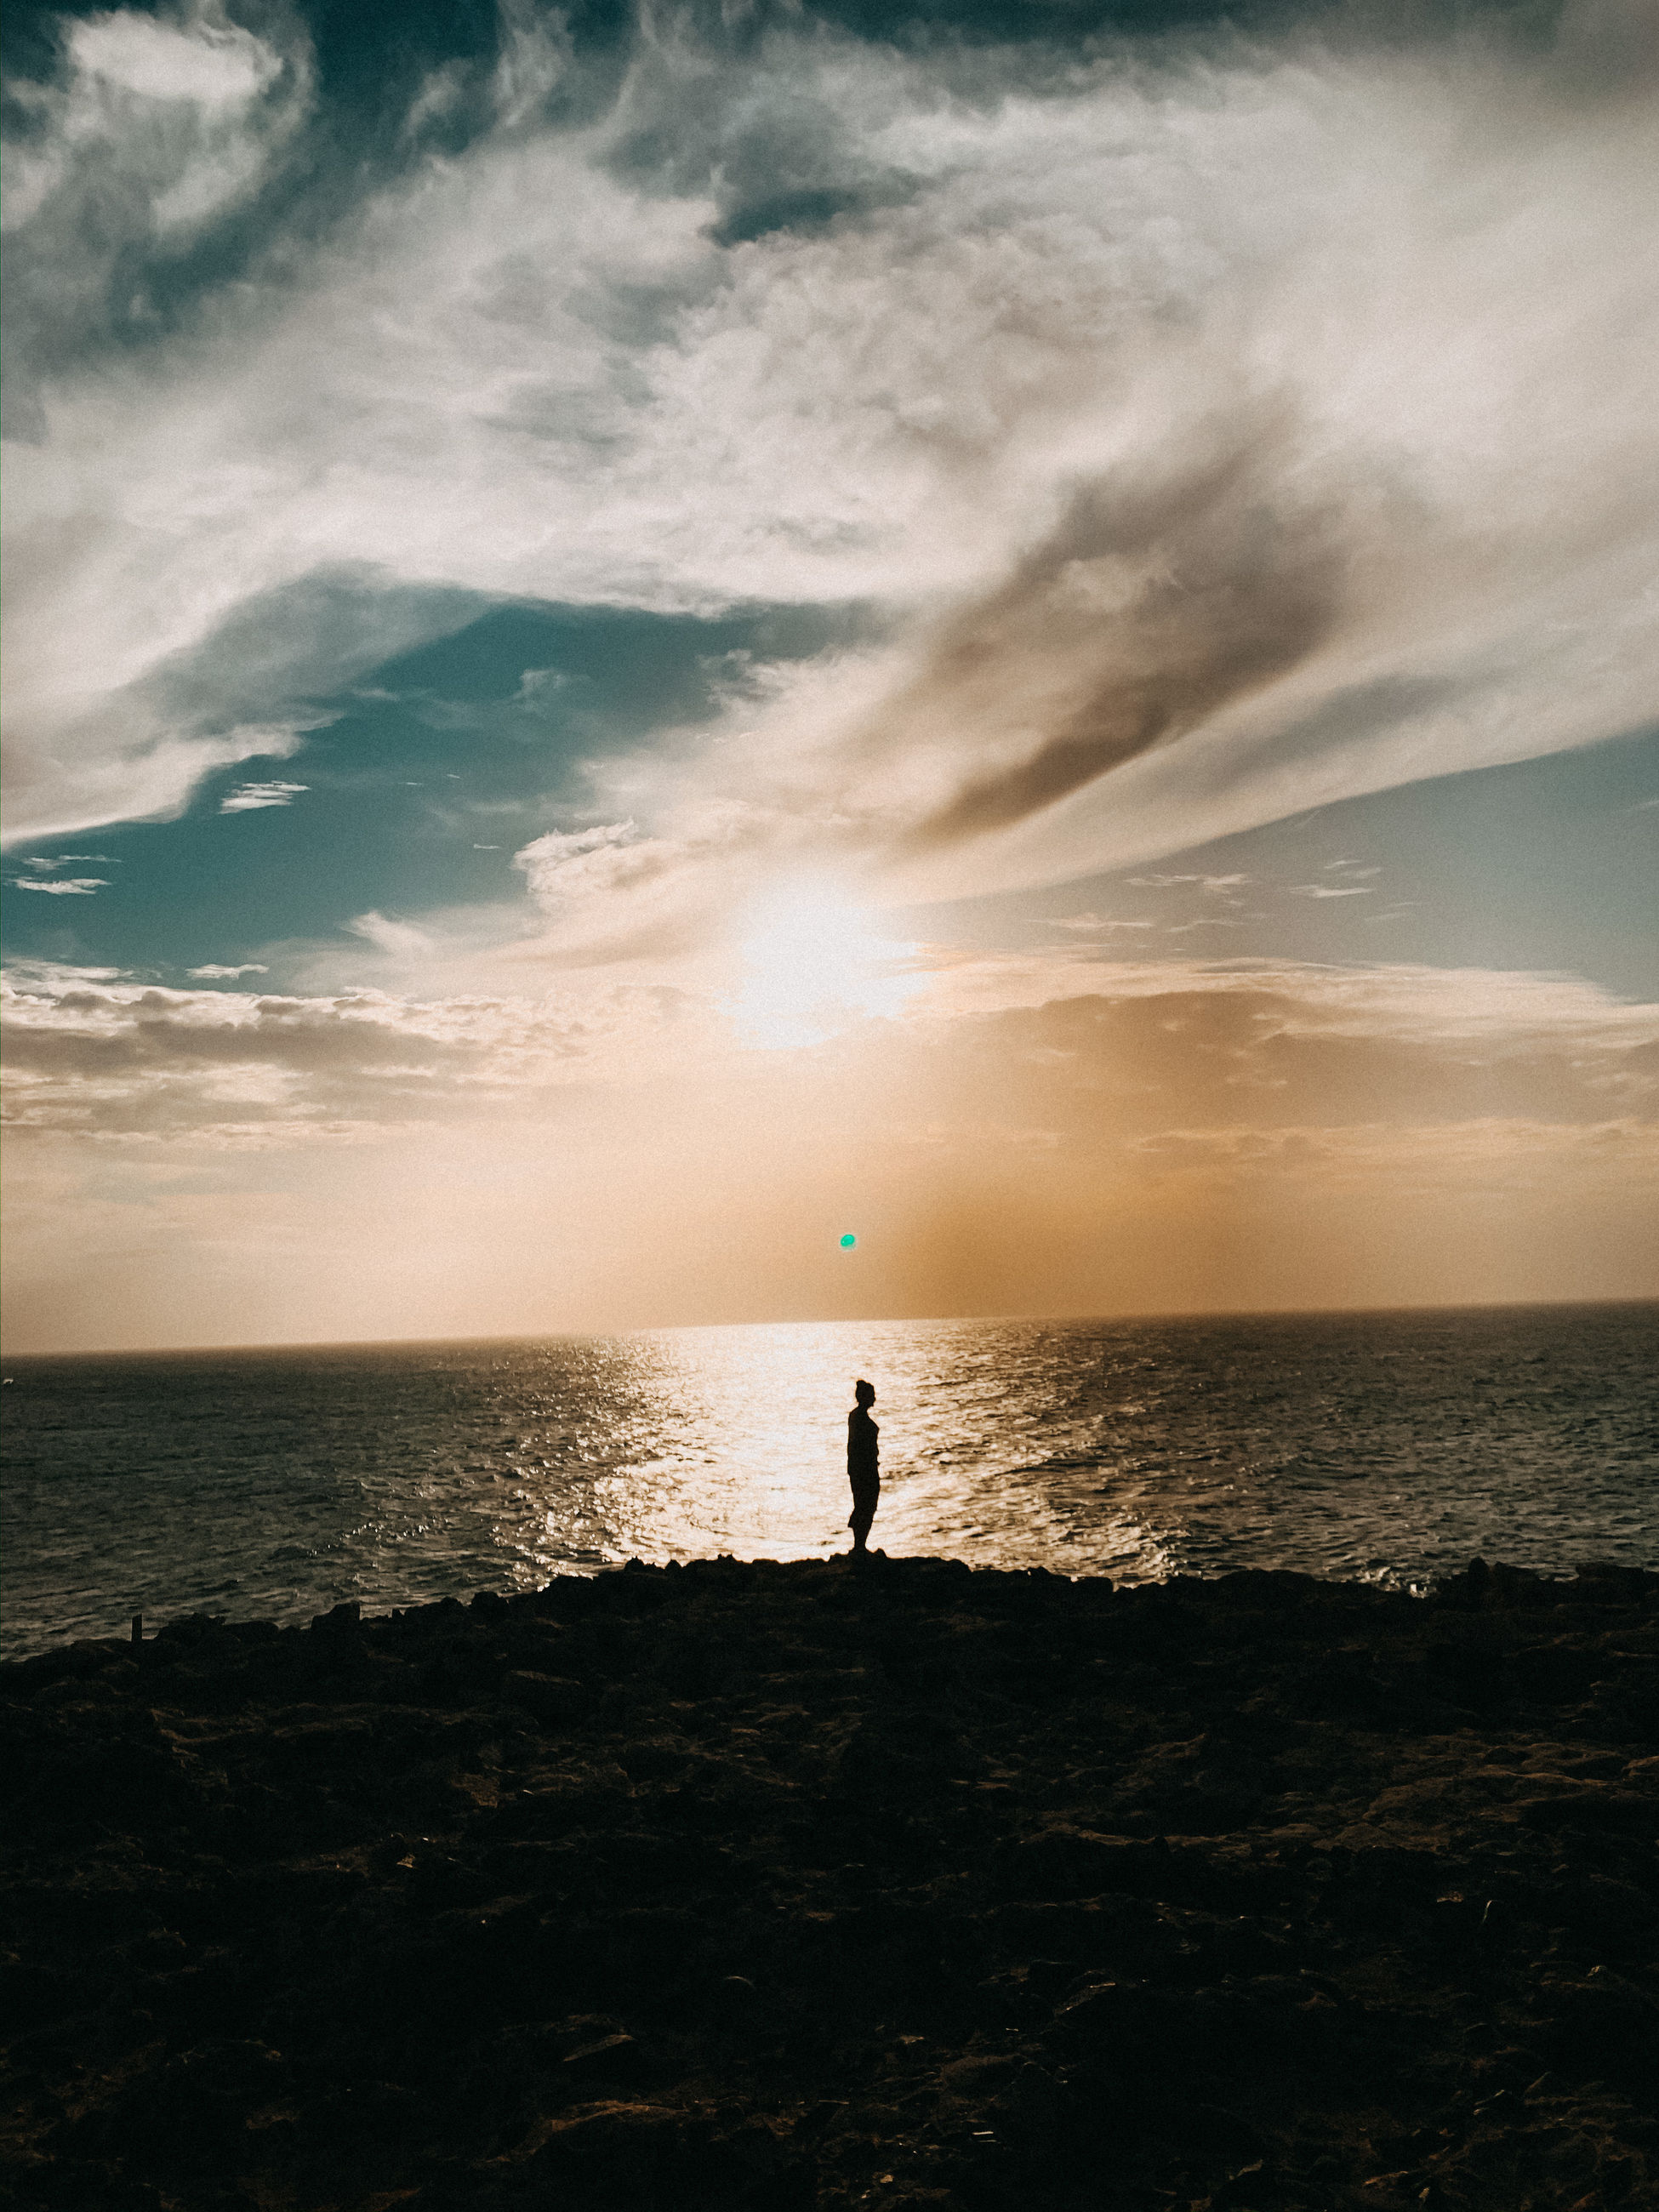 sea, sky, water, horizon over water, horizon, beauty in nature, cloud - sky, scenics - nature, land, standing, beach, sunset, silhouette, nature, real people, tranquility, tranquil scene, lifestyles, rock, outdoors